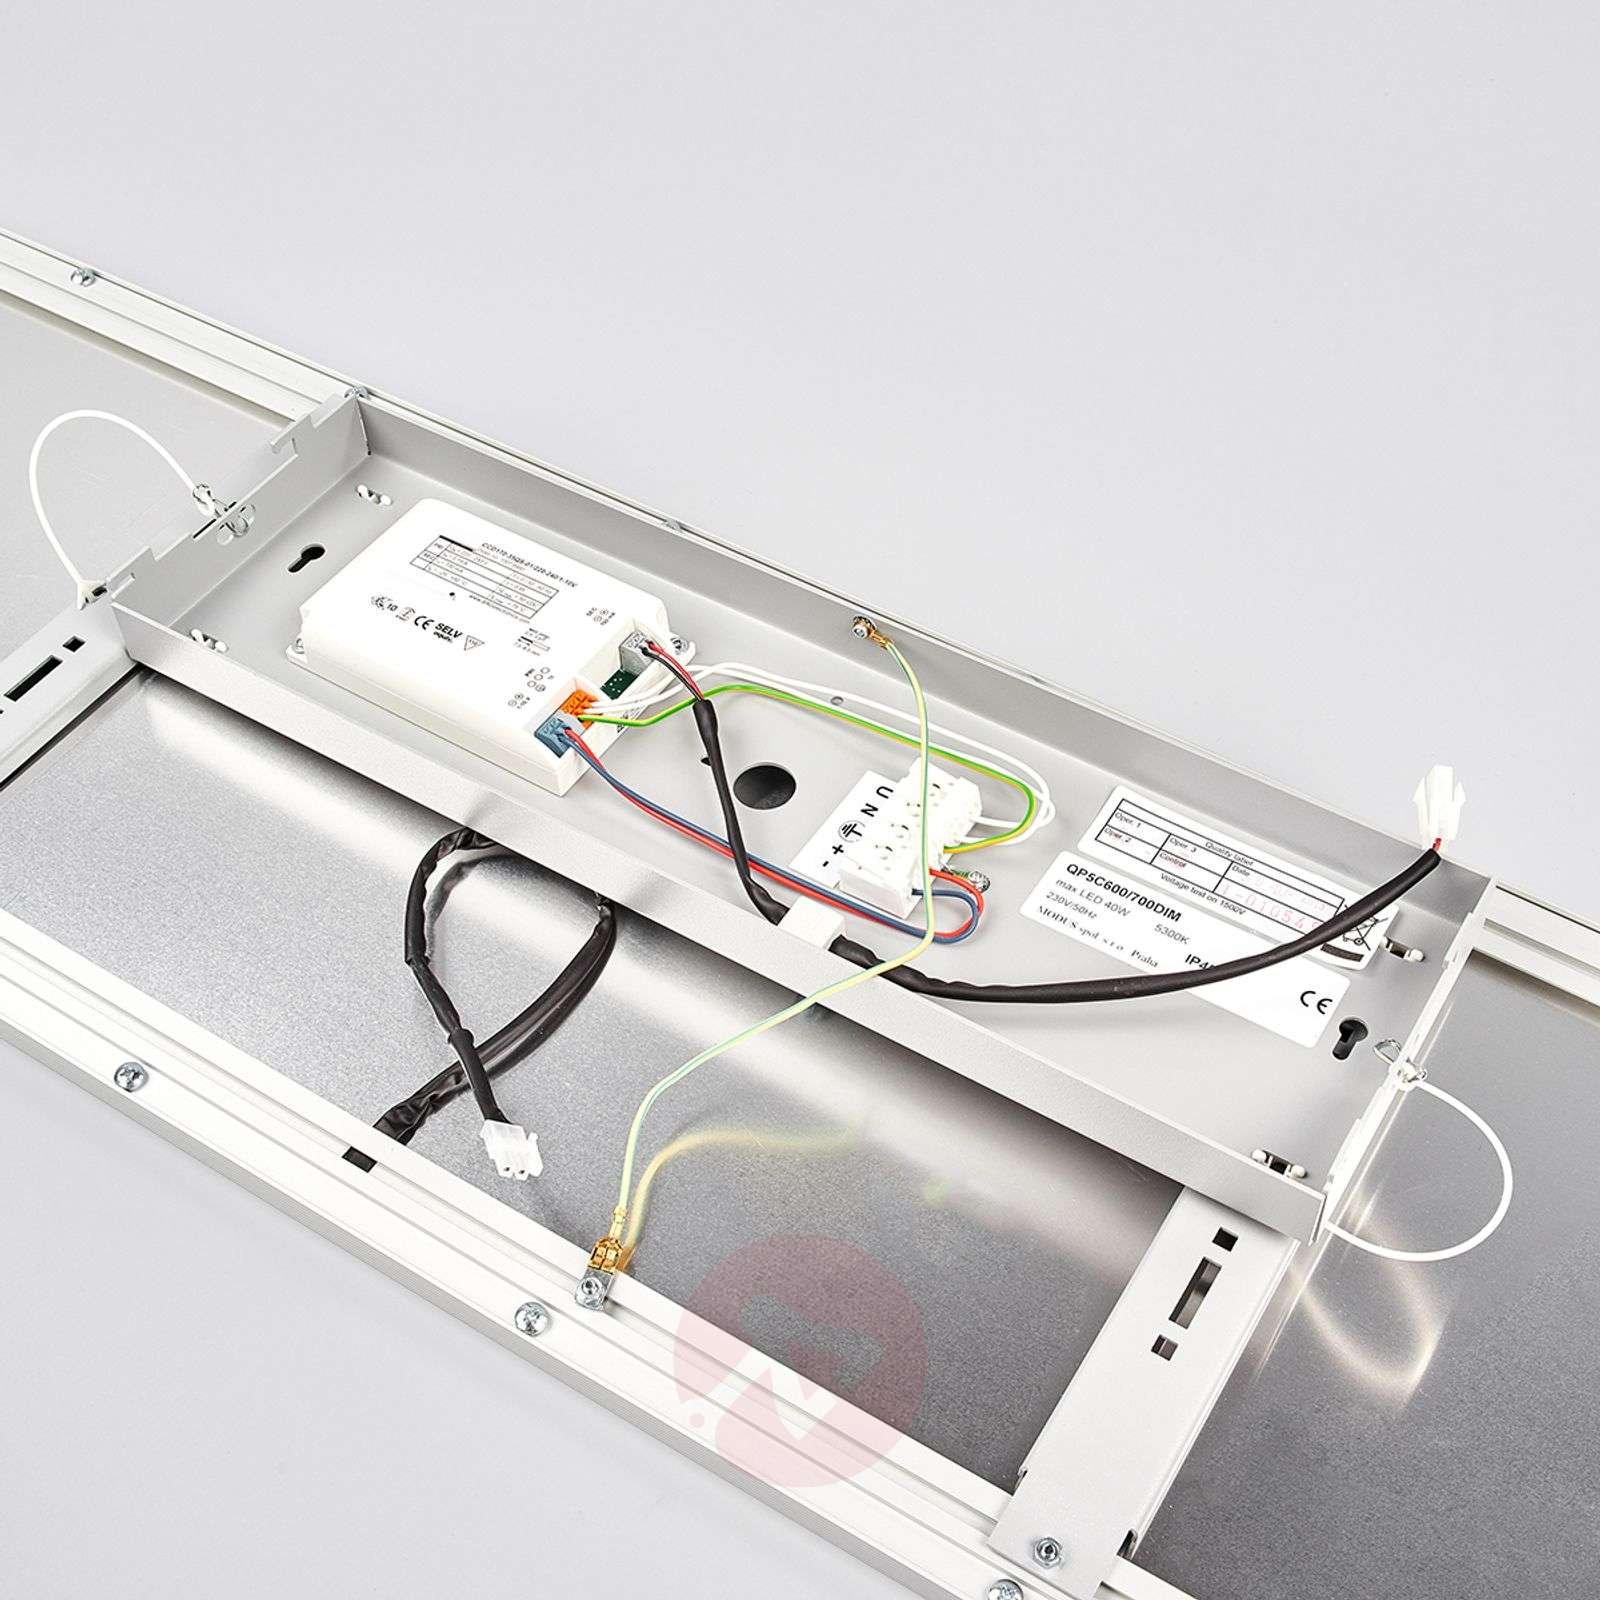 Panel LED universal All in one, BAP, luz diurna-3002138-07